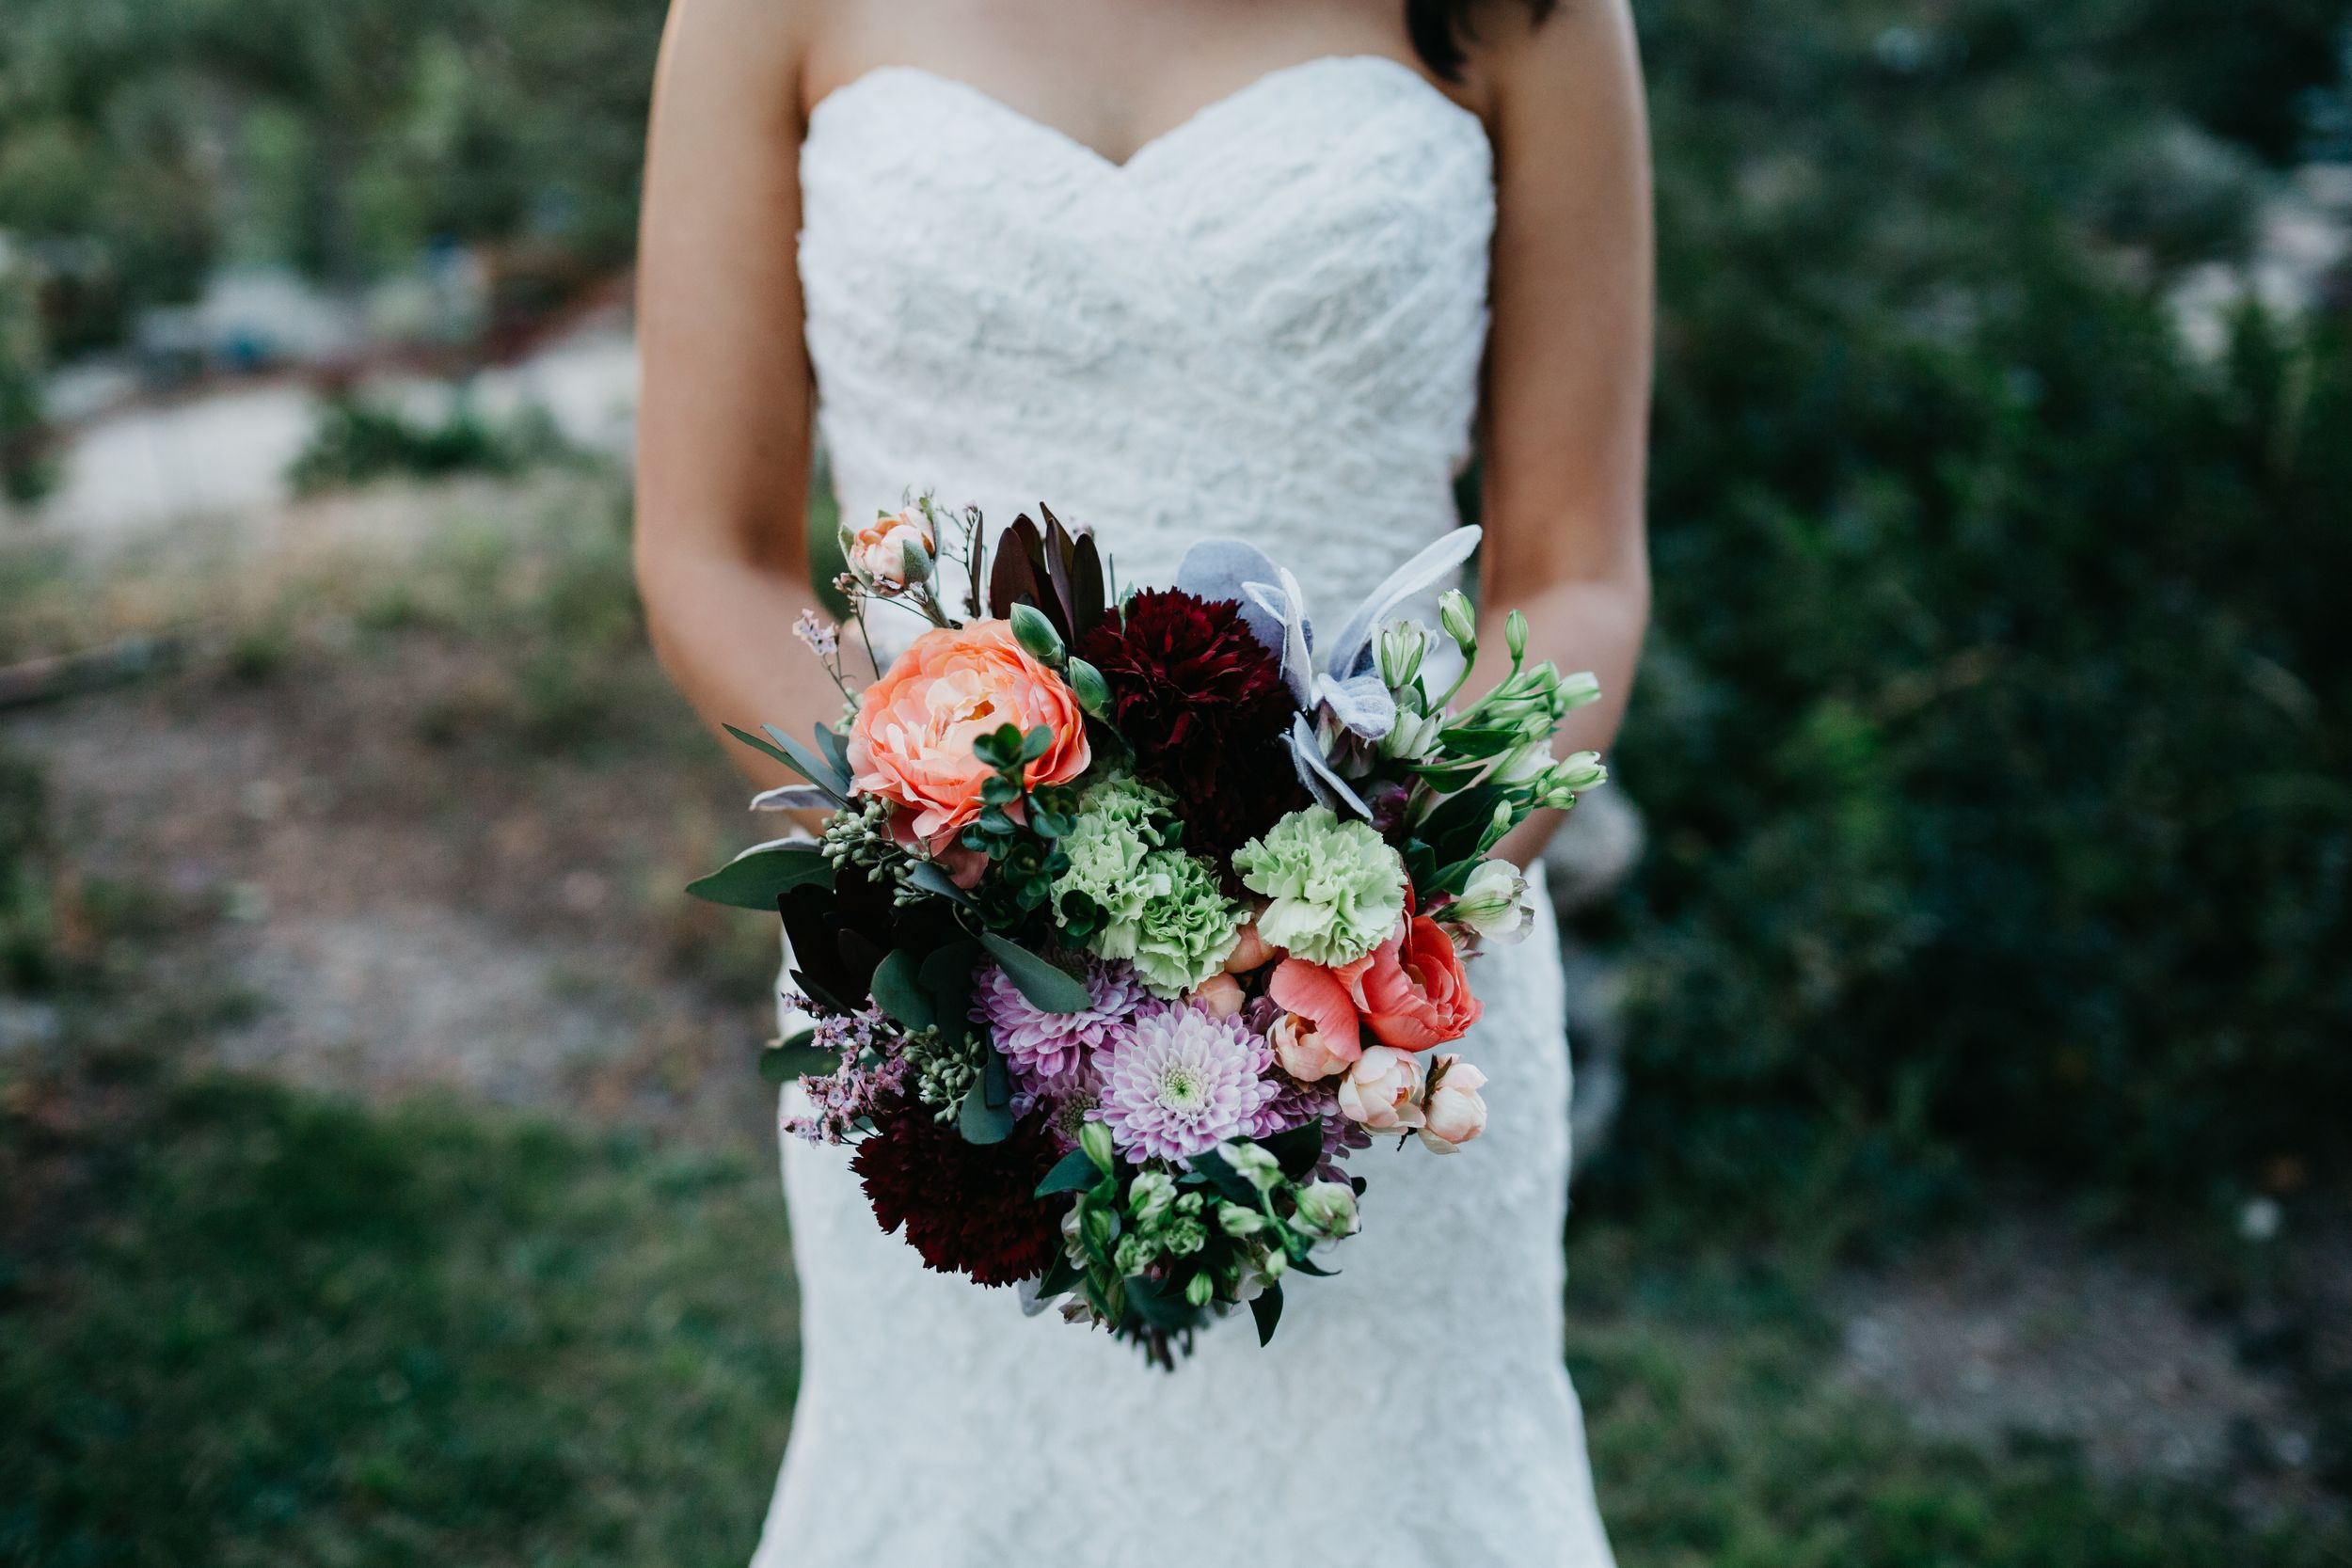 Unique wedding bouquet, summer bouquet ideas, Colorado wedding ideas, Colorado wedding photographer, co classic wedding